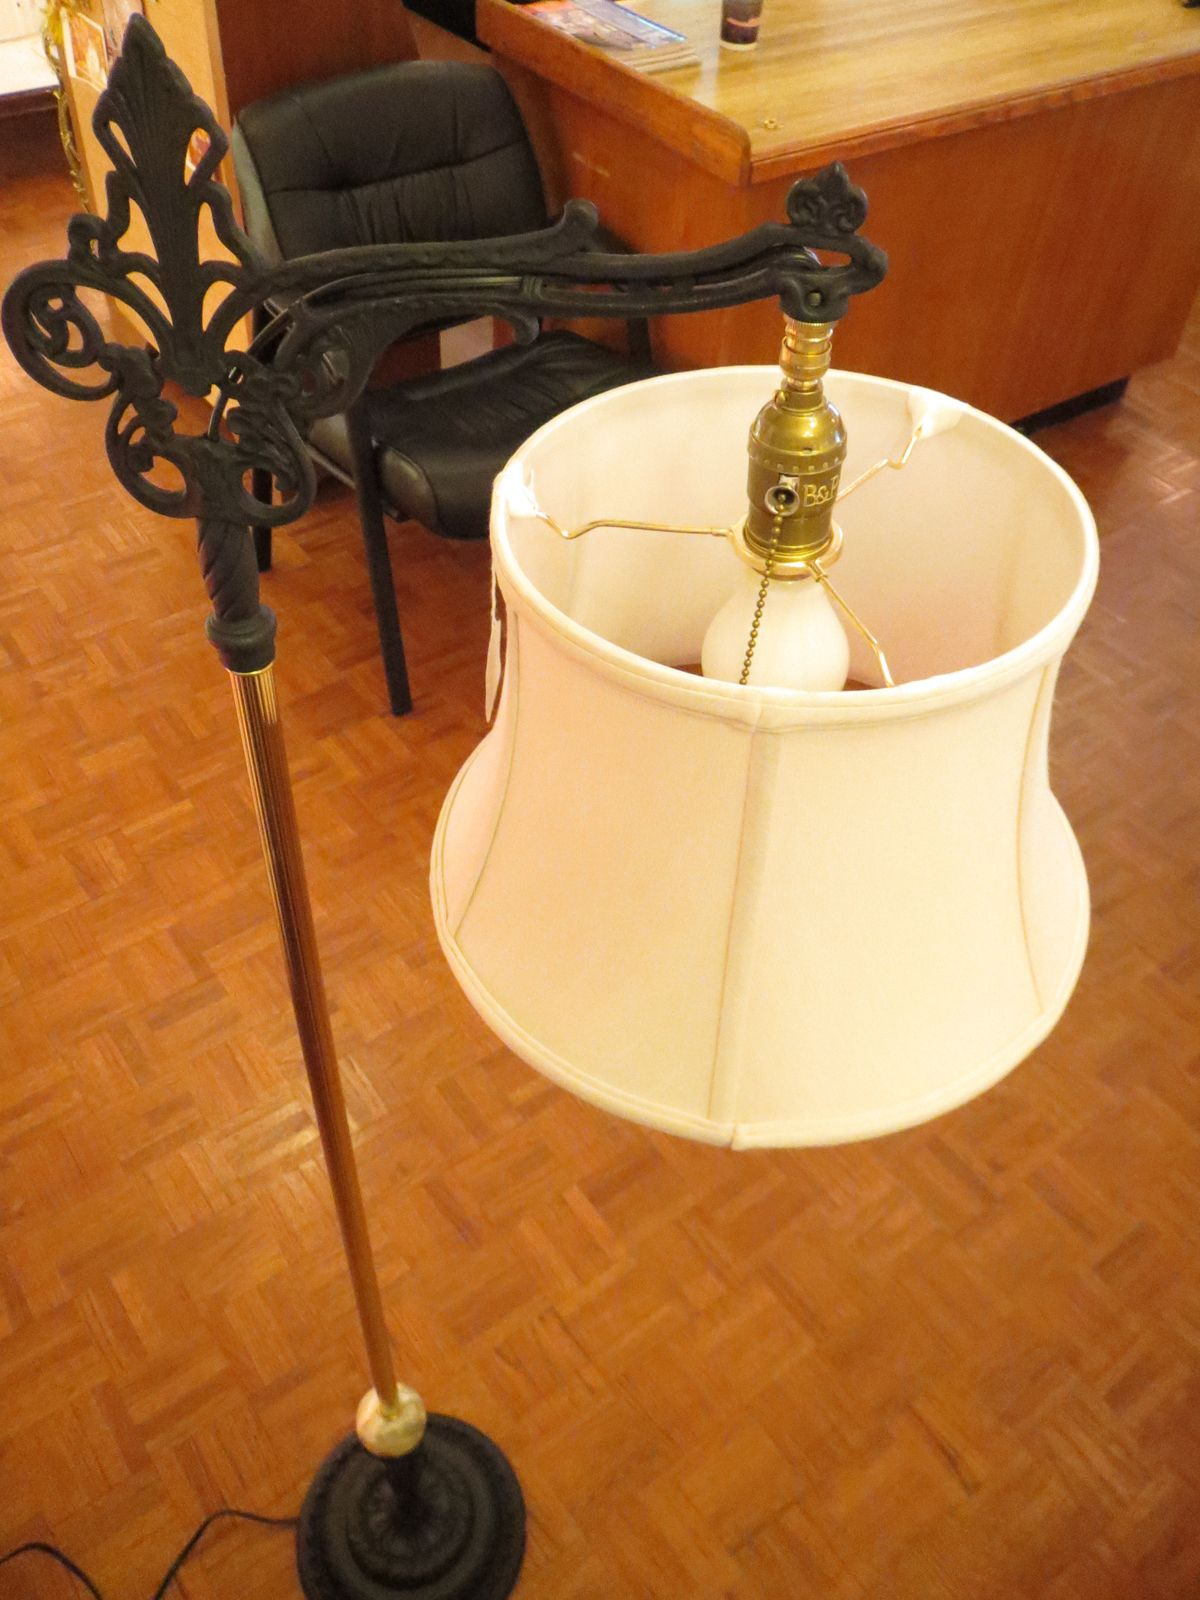 How to Use an UNO Shade Adapter Lamp, Uno lamp shades